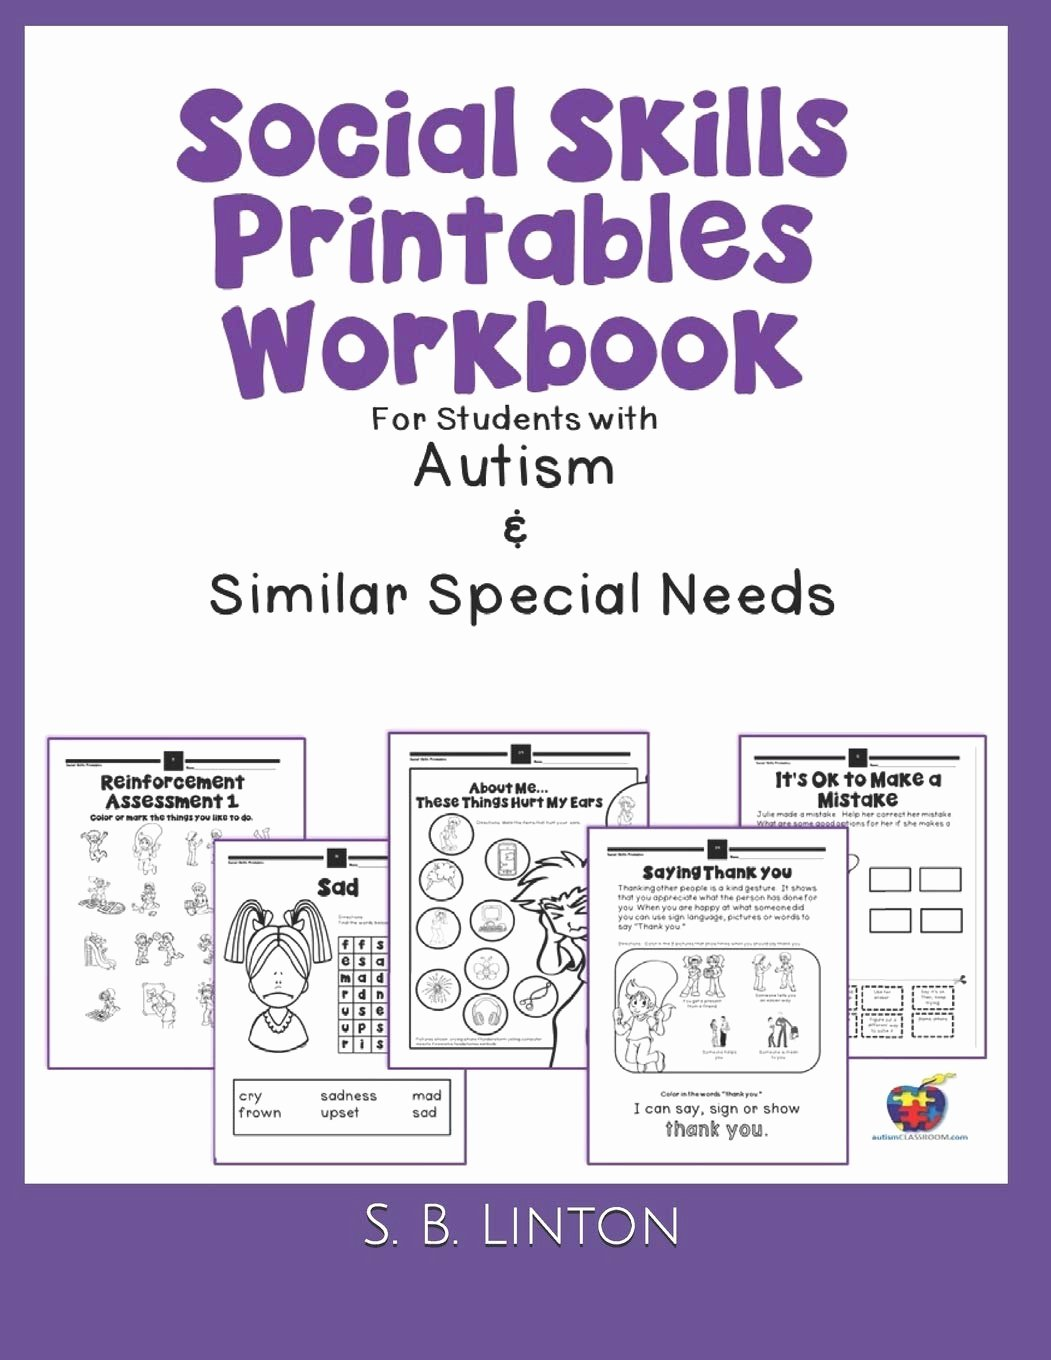 Math Worksheets for Autistic Students Inspirational social Skills Printables Workbook for Students with Autism